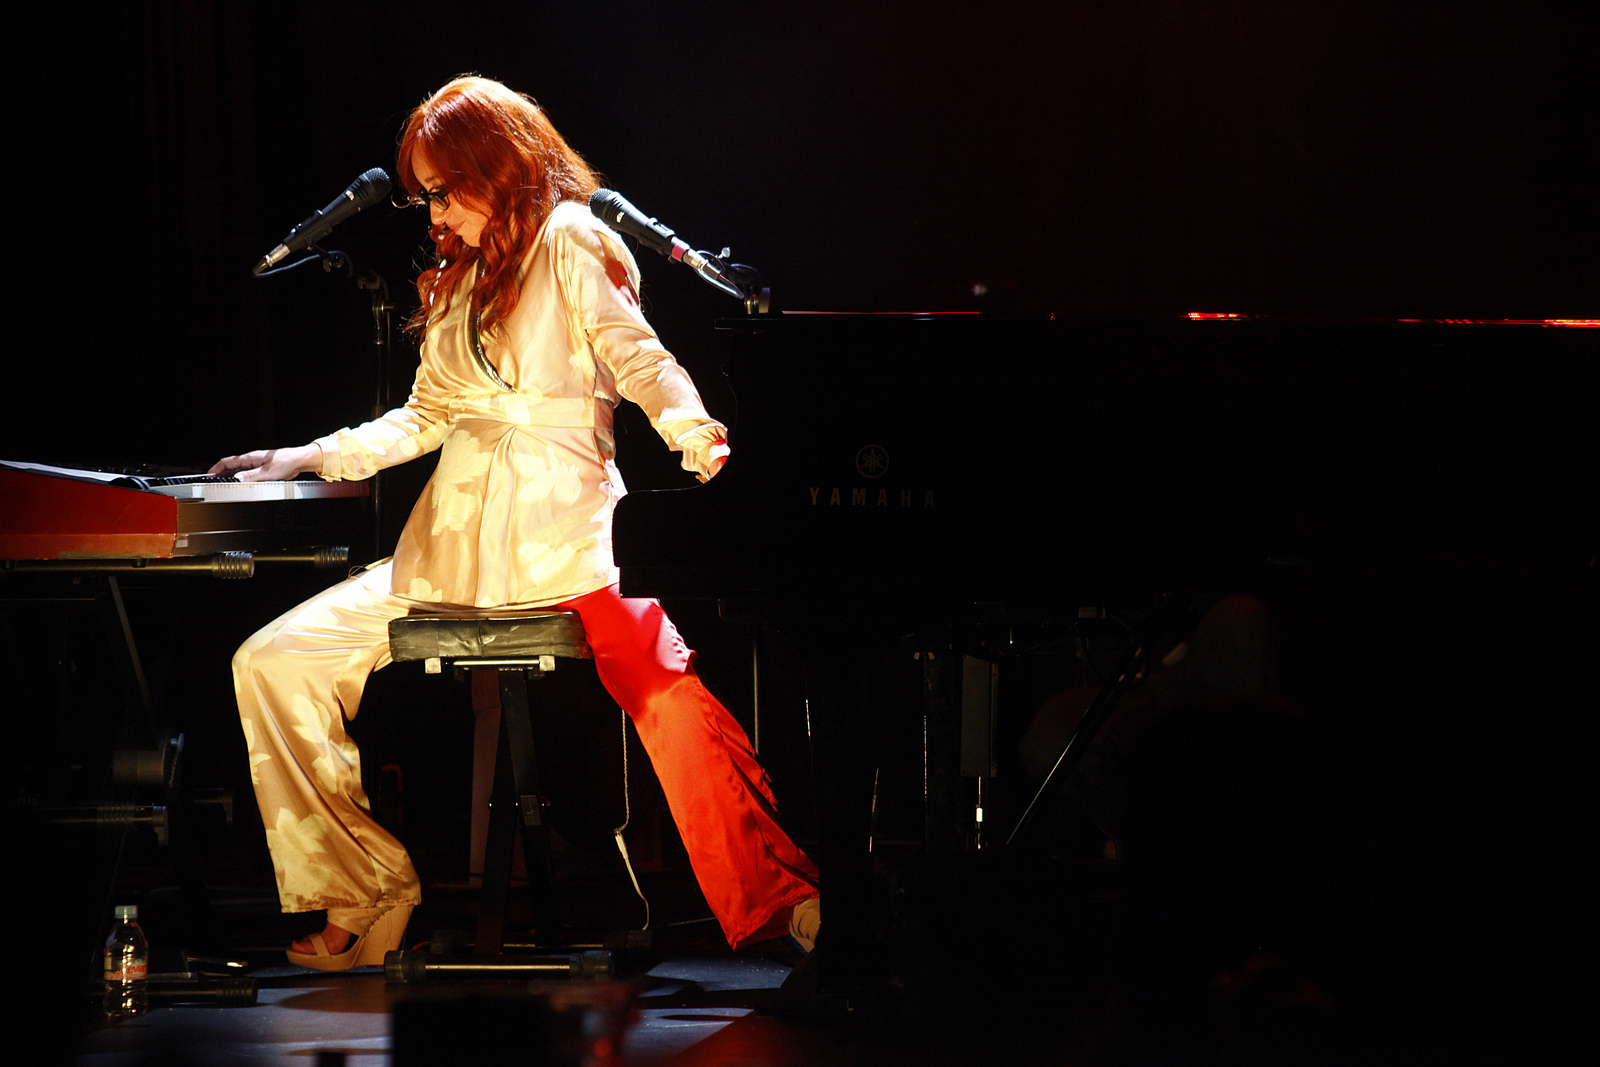 The intimate performance for just over 250 fans celebrated two decades of music from her career.